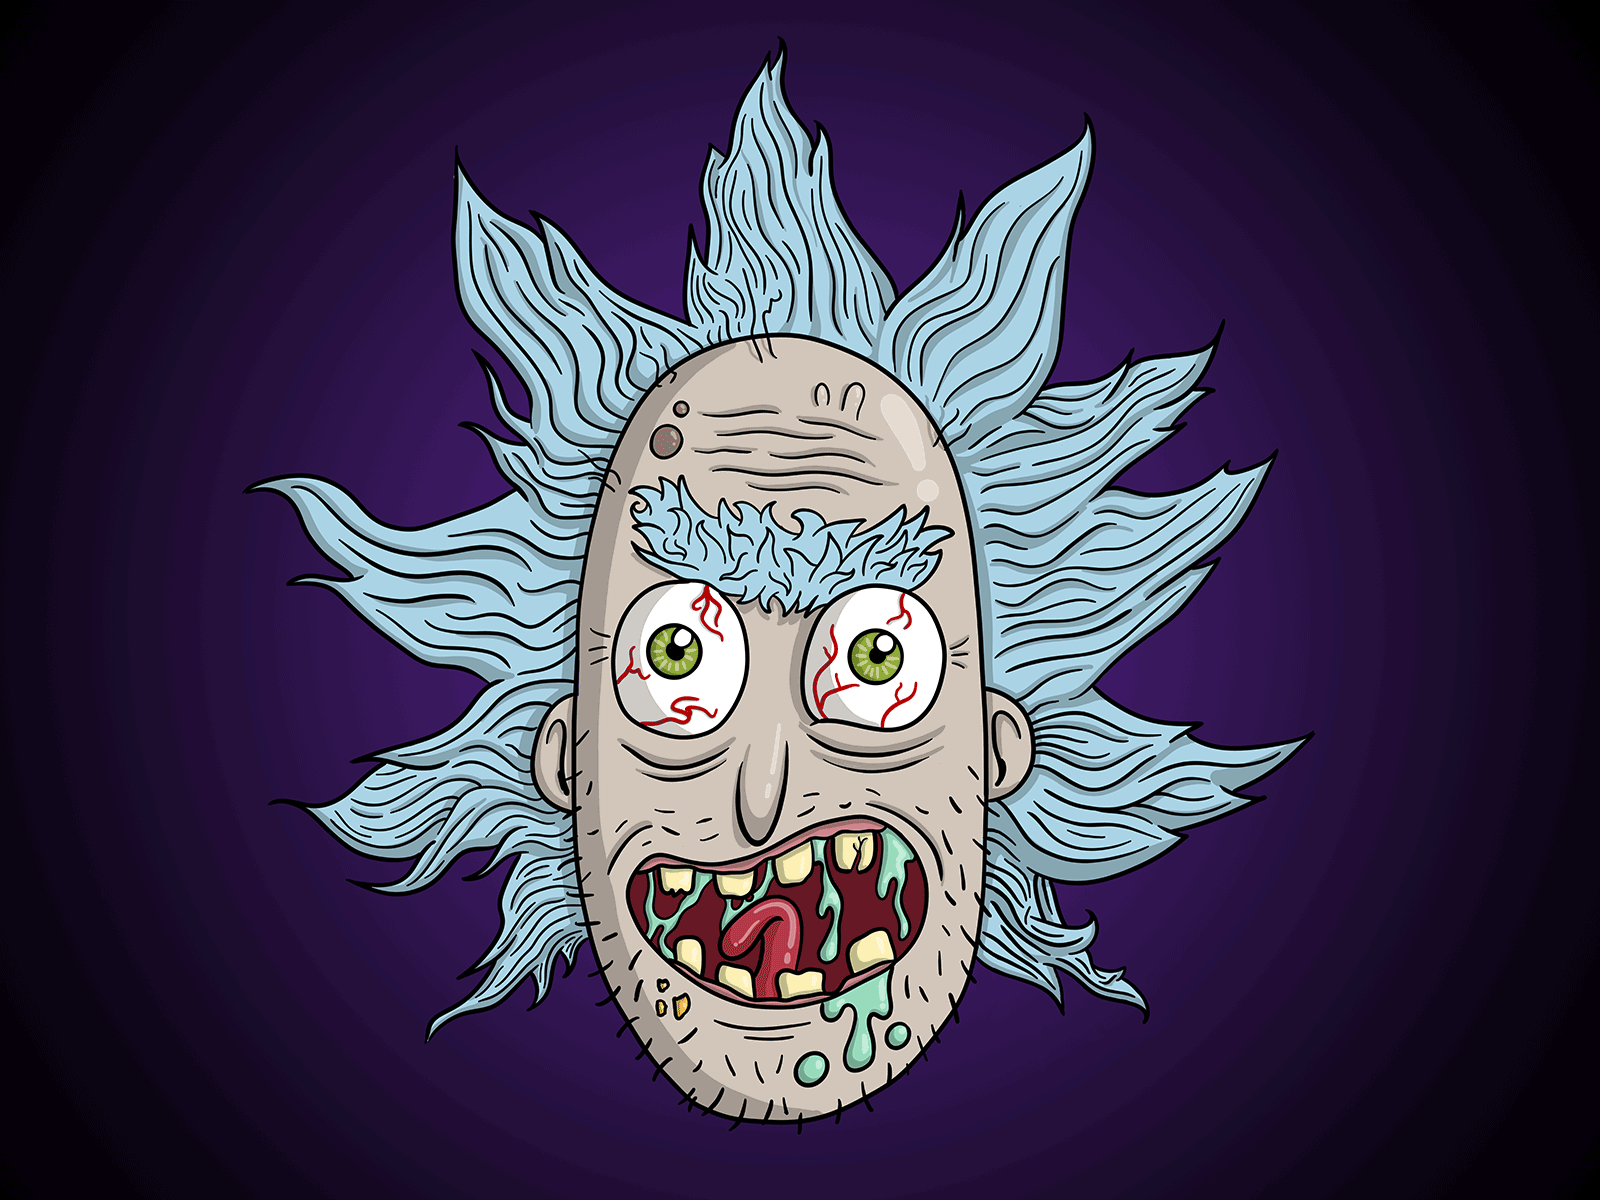 Fractal Dust Rick merchandise gross fan art rick sanchez funny cool cartoon illustration fanart rick and morty